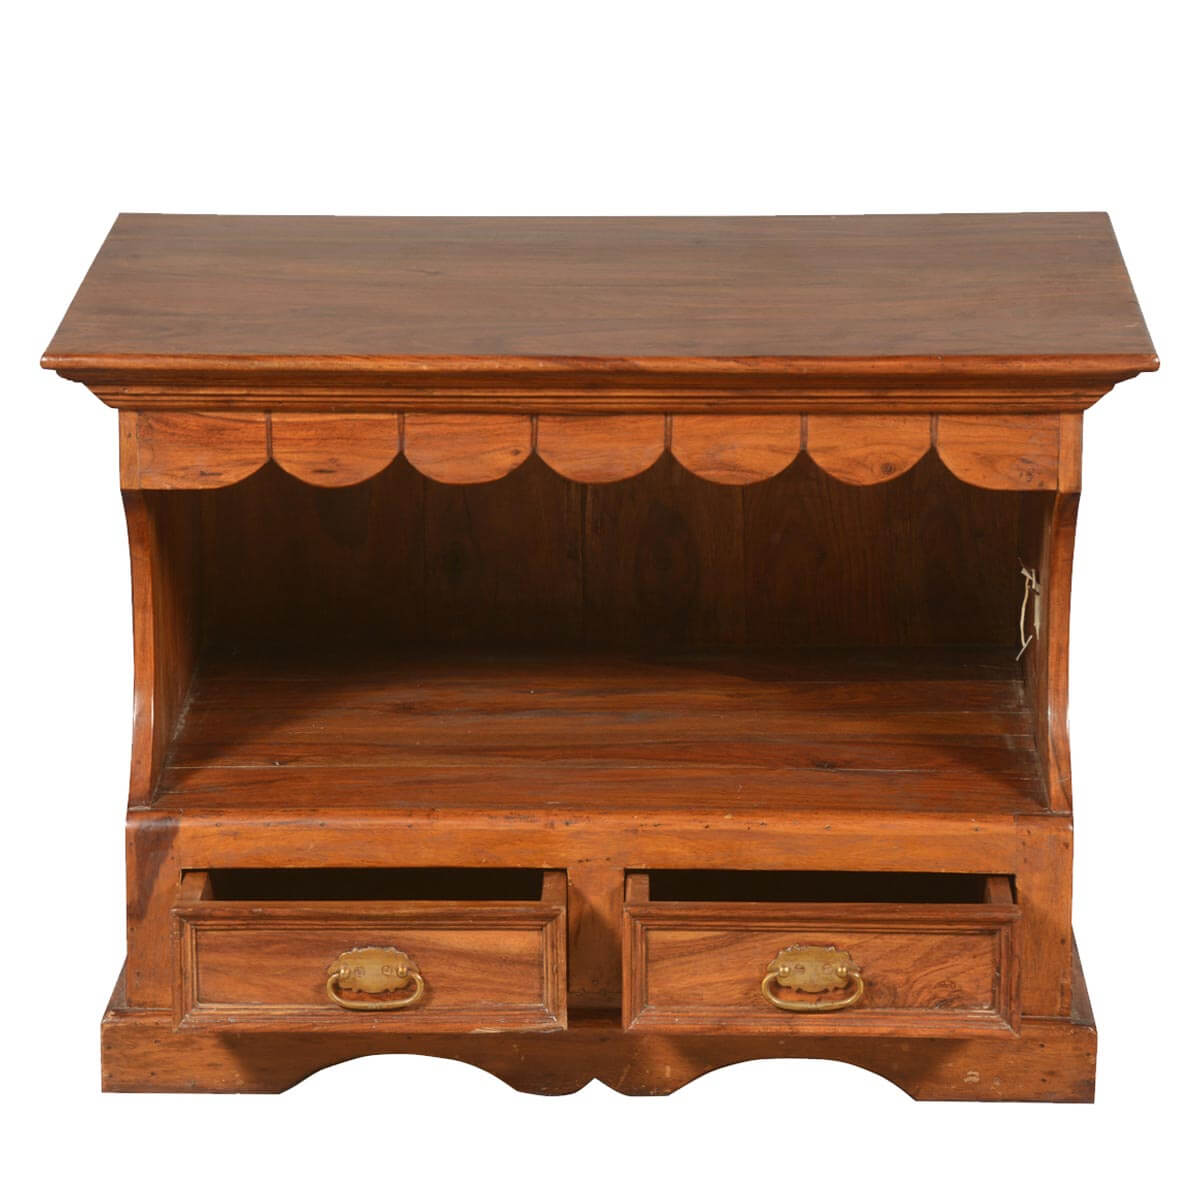 Solid wood media console rustic tv stand w 2 drawers Rustic tv stands